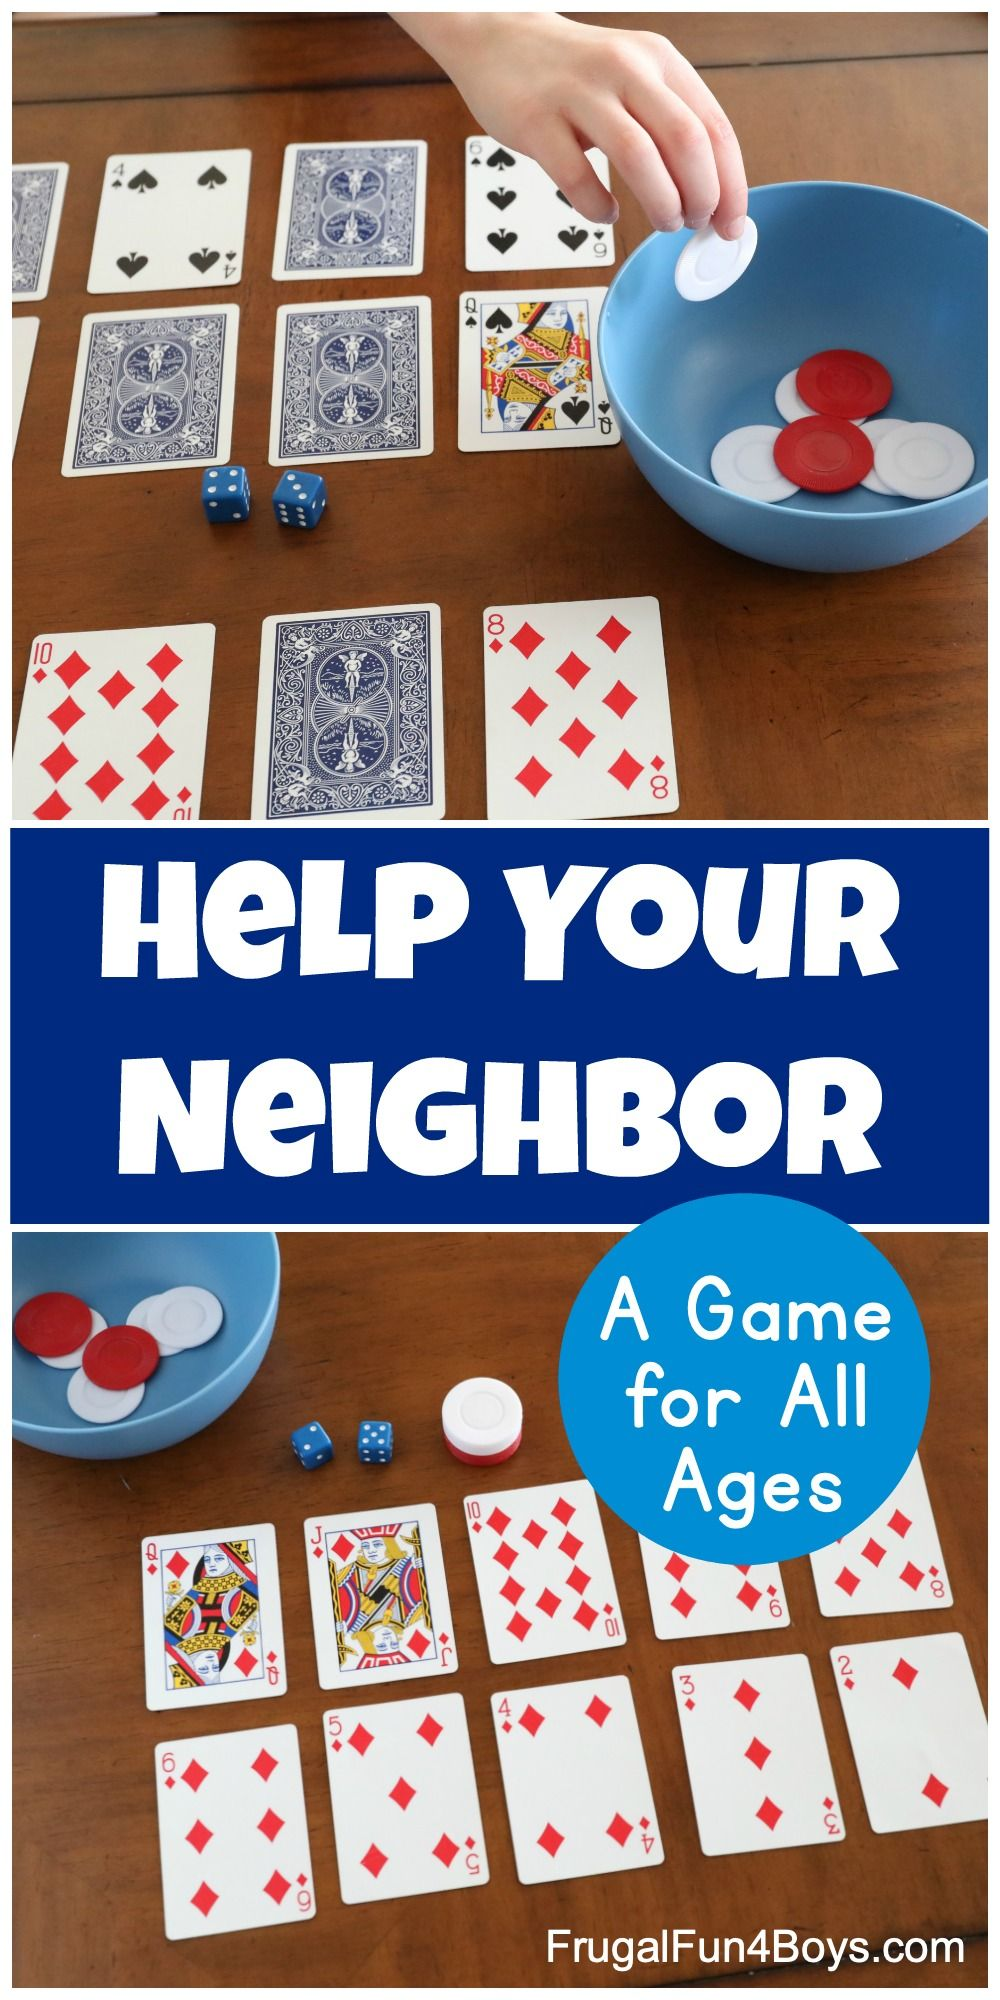 How To Play Help Your Neighbor A Fun Family Card Game Frugal Fun For Boys And Girls Family Card Games Card Games For Kids Games To Play With Kids